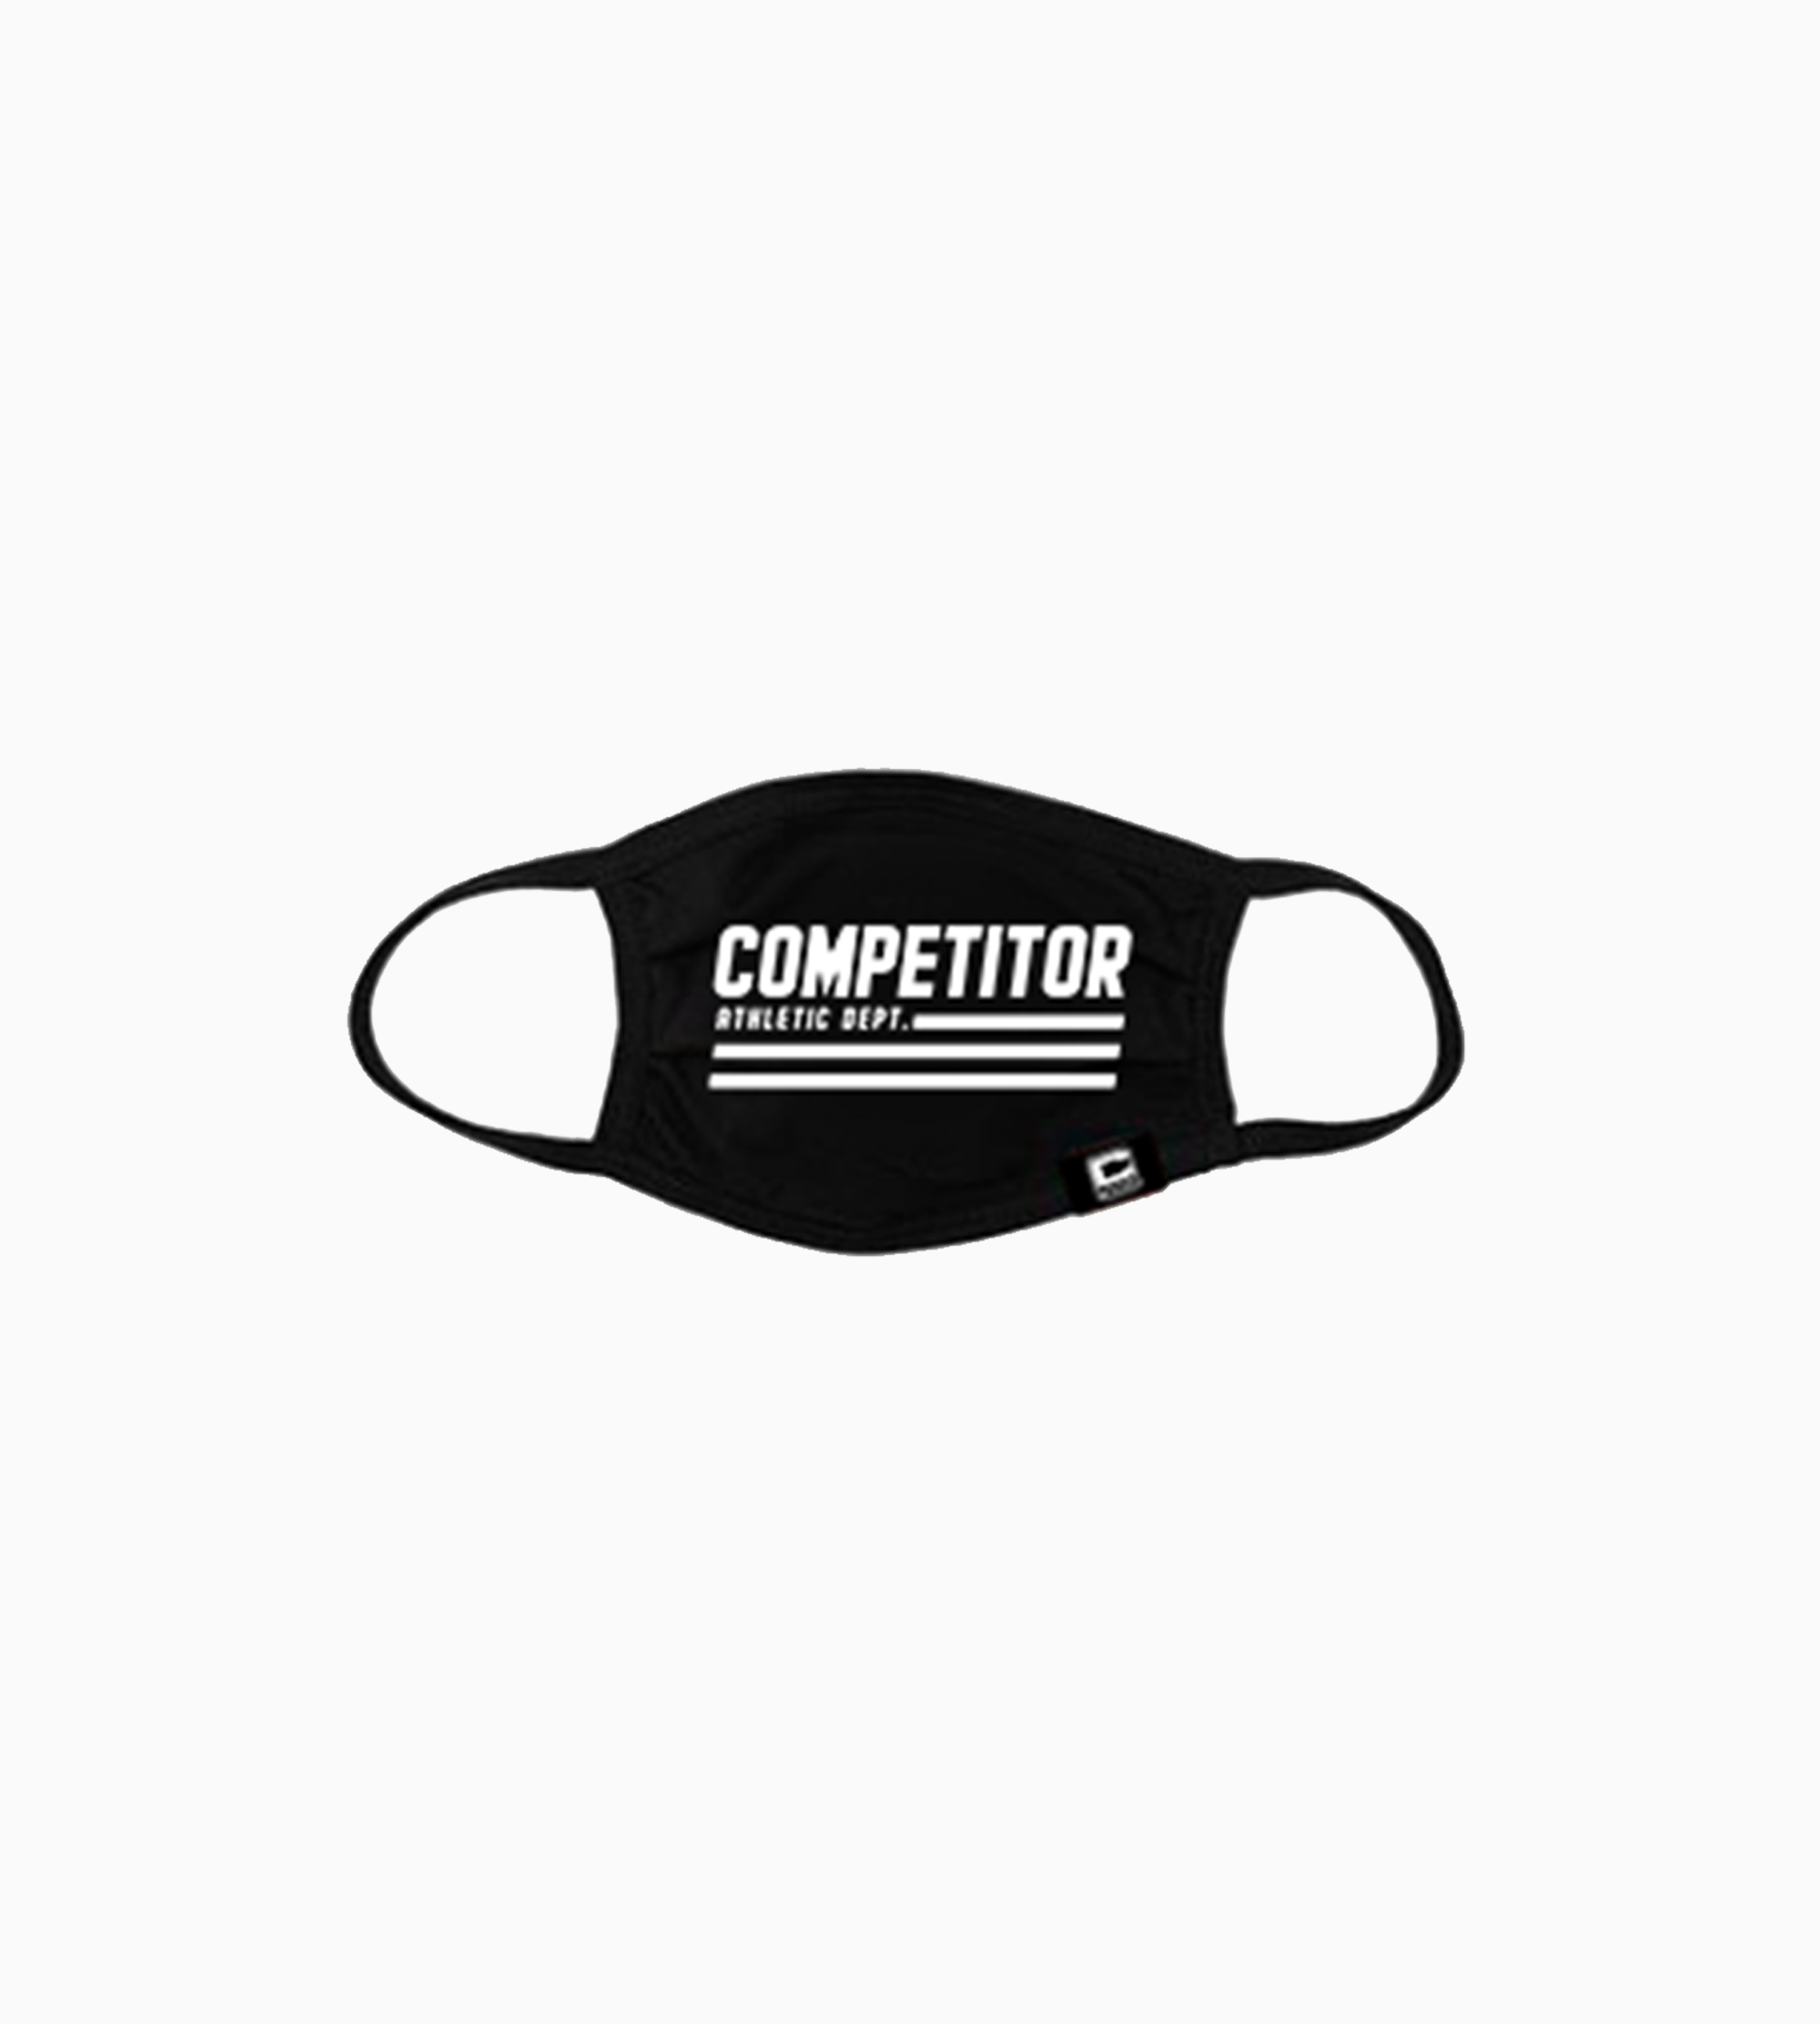 Competitor Flag Mask